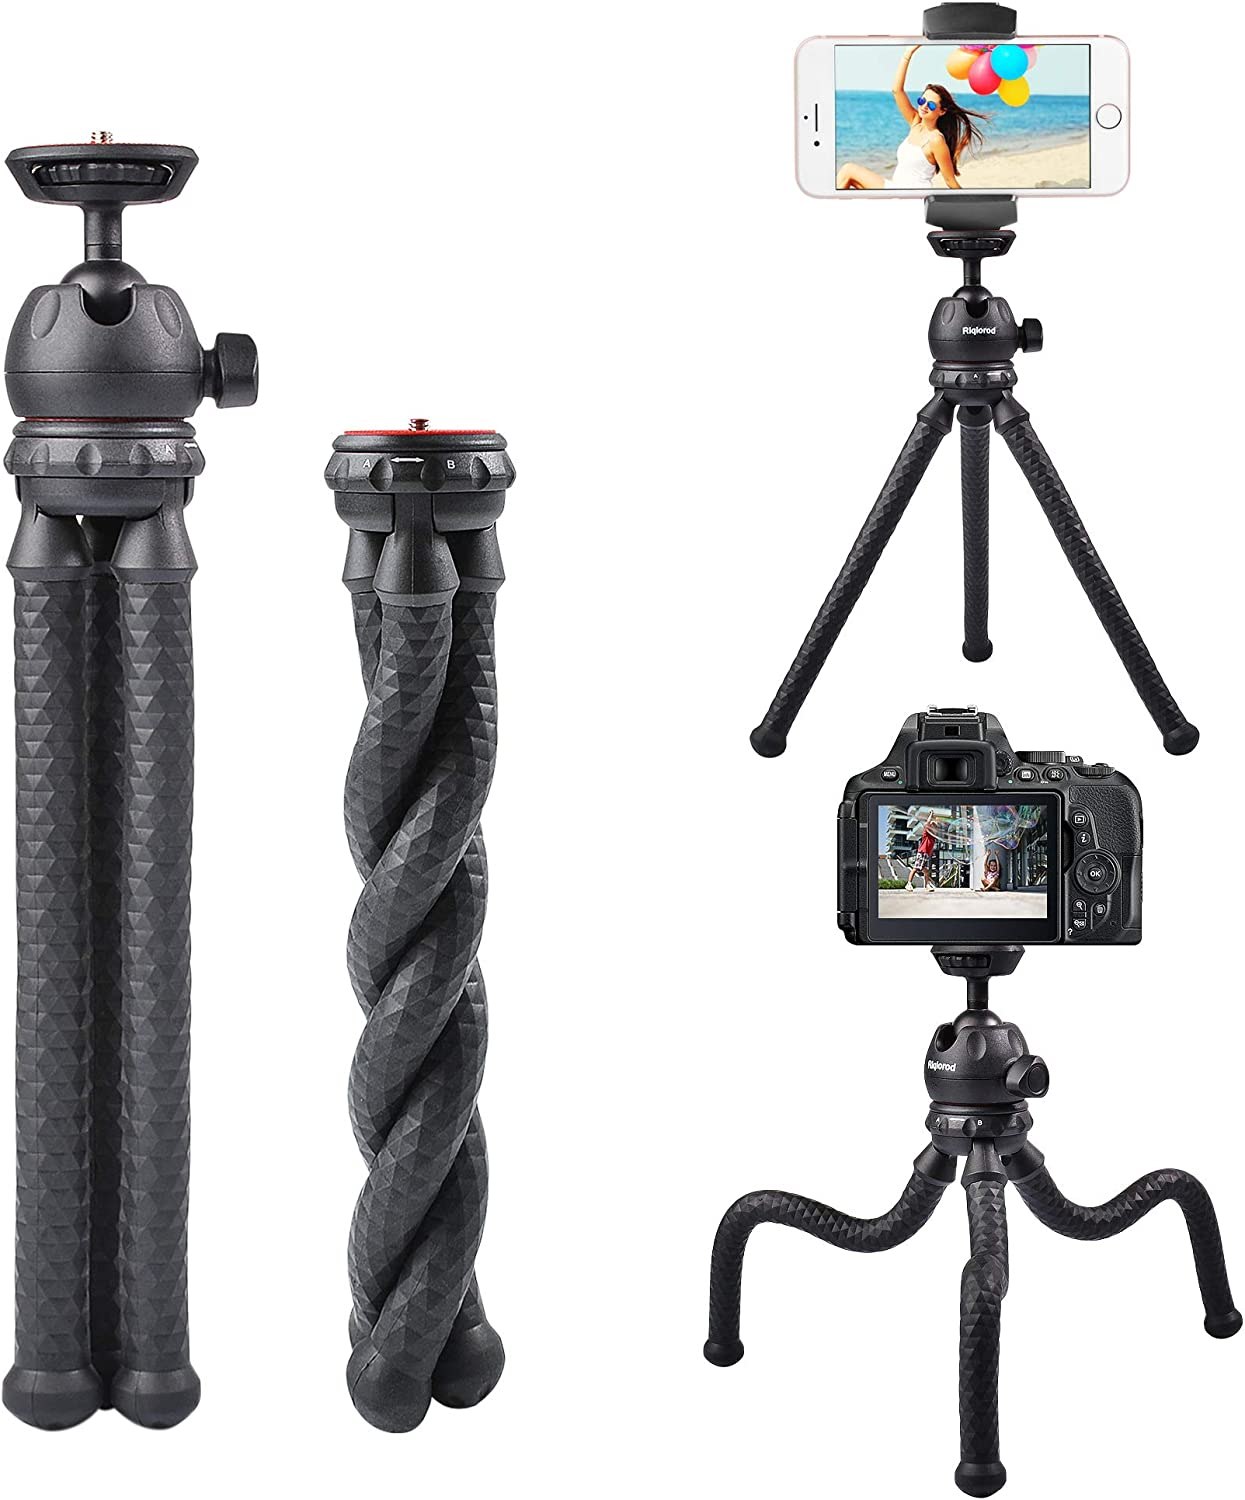 Flexible Tripod Camera Phone Mini wit Clip Holder Mobile Popular products lowest price